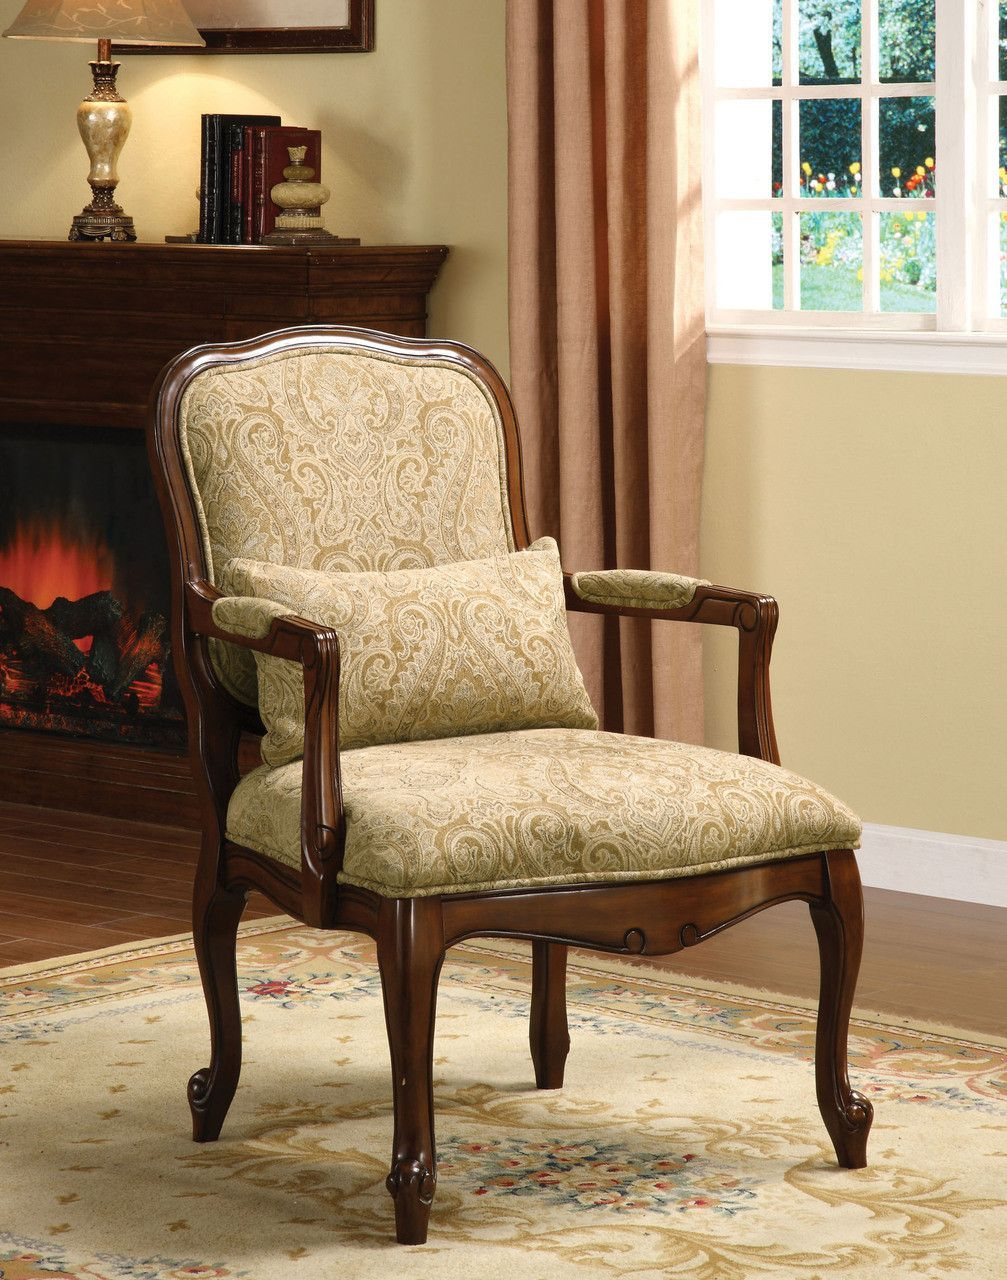 Waterville Cm Ac6980 Accent Chair With Queen Anne Style Legs This